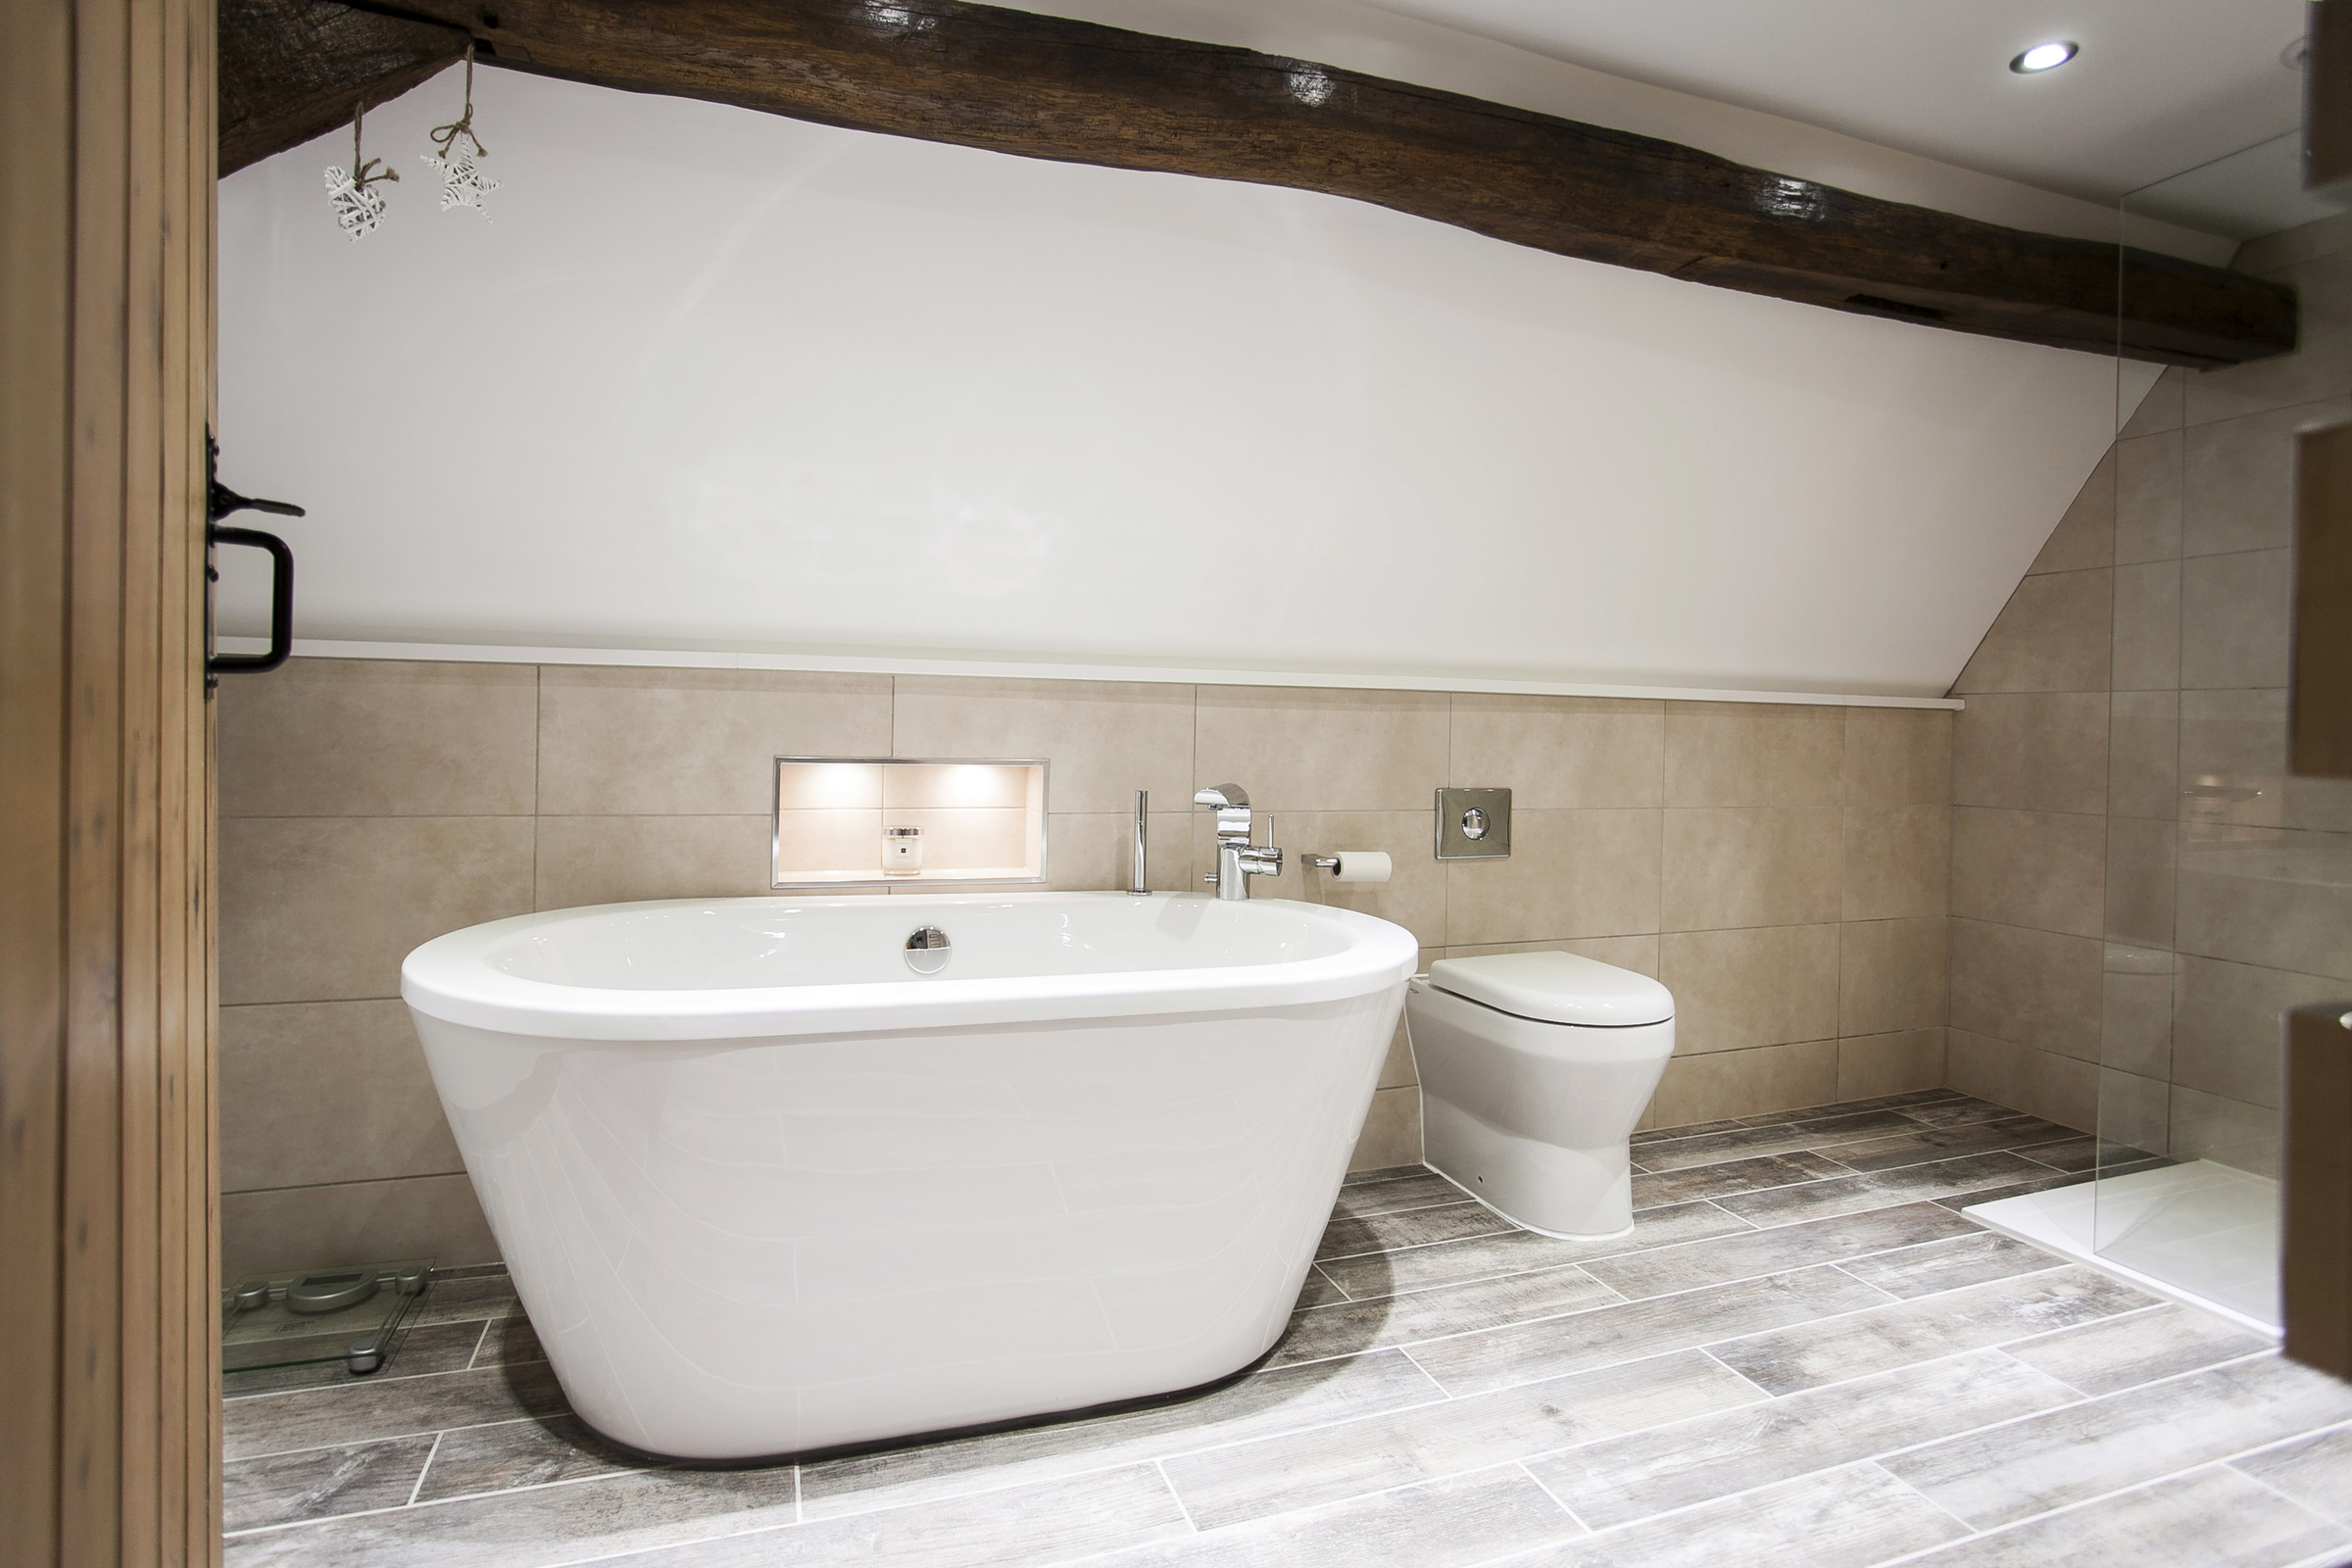 Blissful Bathroom Design From Burlanes Bathroom Designers Burlanes Interiors Kent And Essex